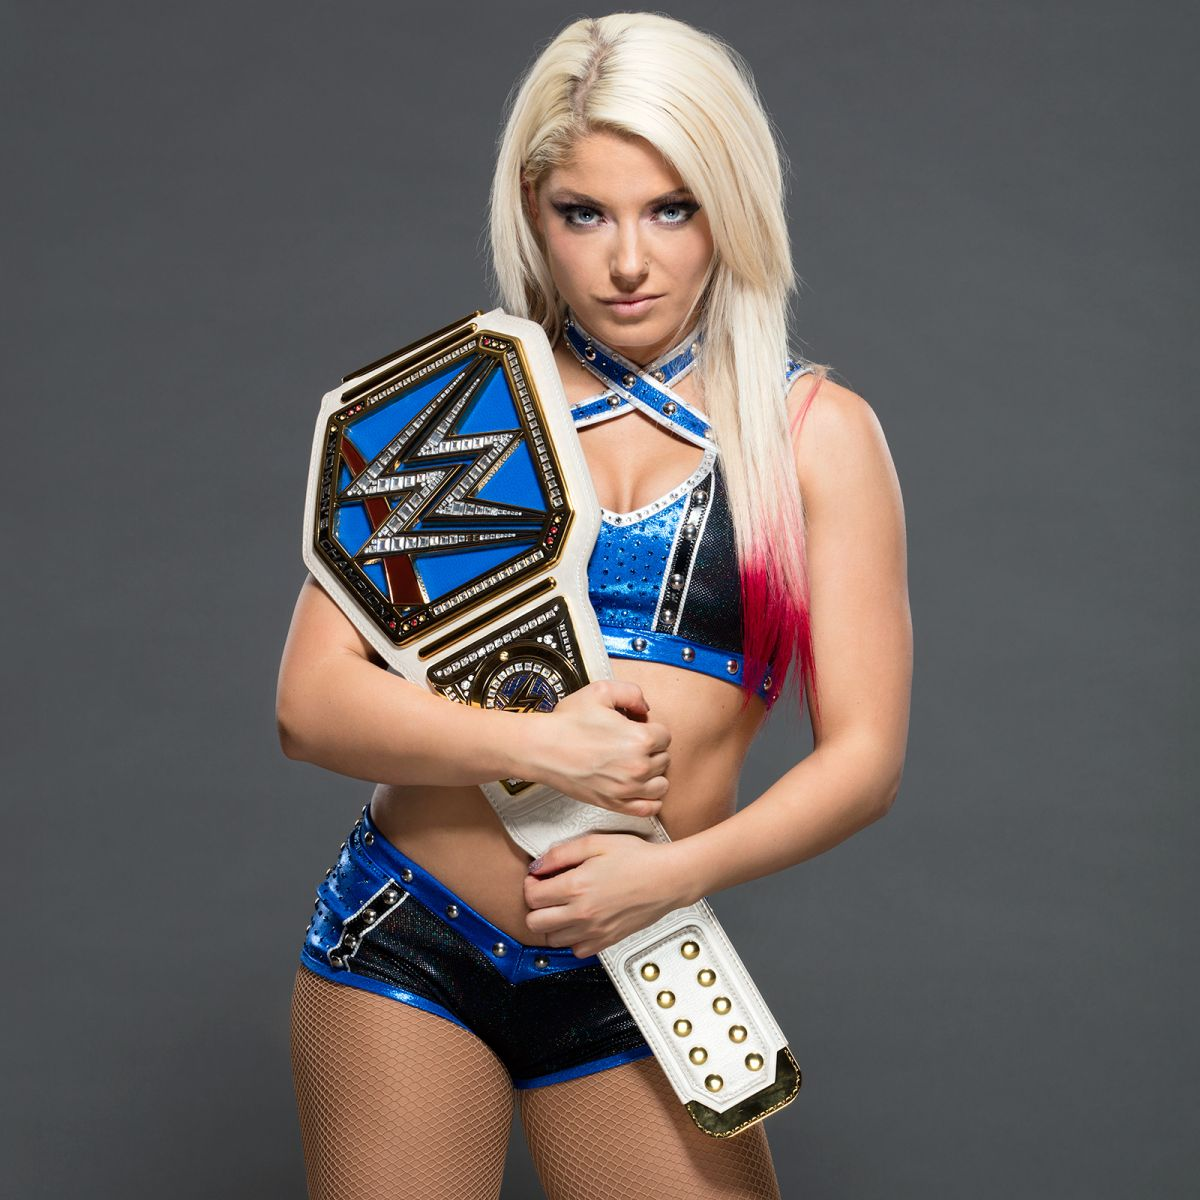 WWE - Bayley, Alexa Bliss and Naomi: Hall of Champions Pictures